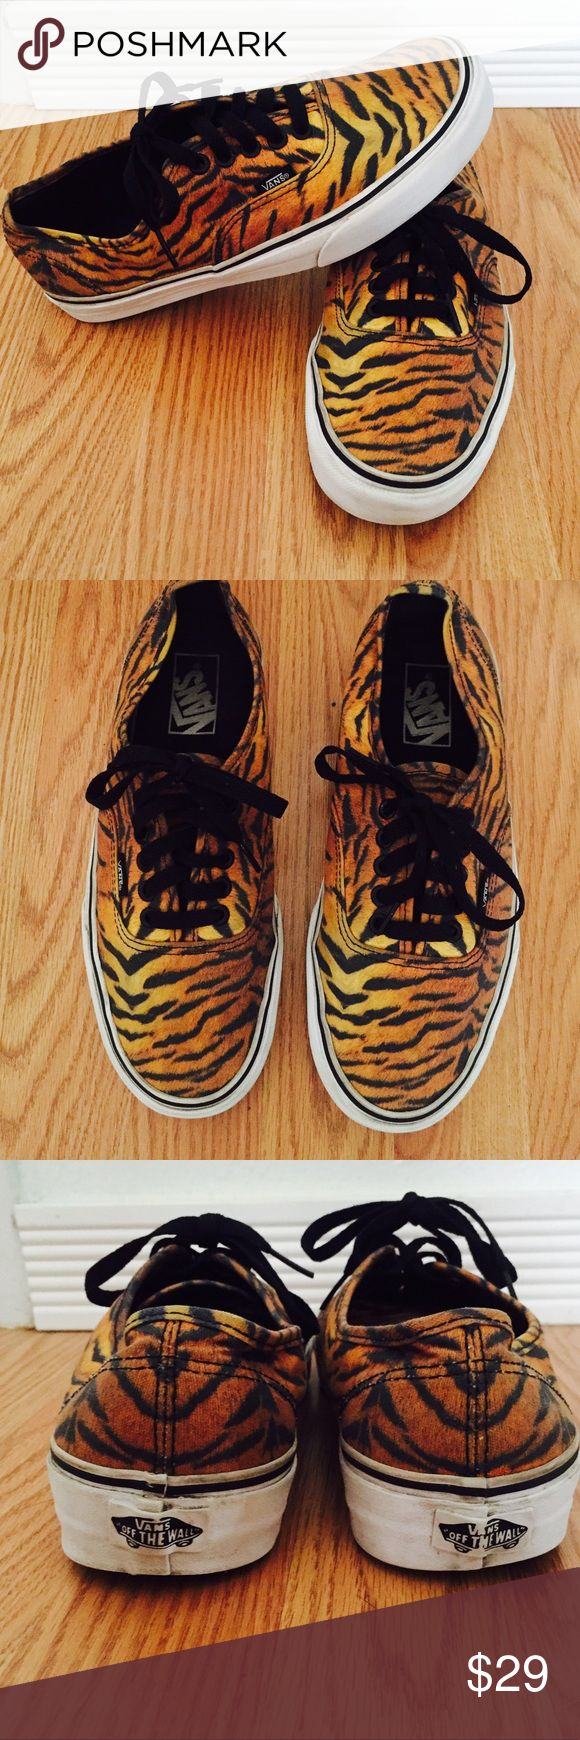 Tiger strip print cans in good used condition Tiger stripe print vans in good condition.  I love leopard print lol so ofcourse the tiger stripes were one of my faves 😂.  Same color scheme just a cooler print. Vans Shoes Sneakers